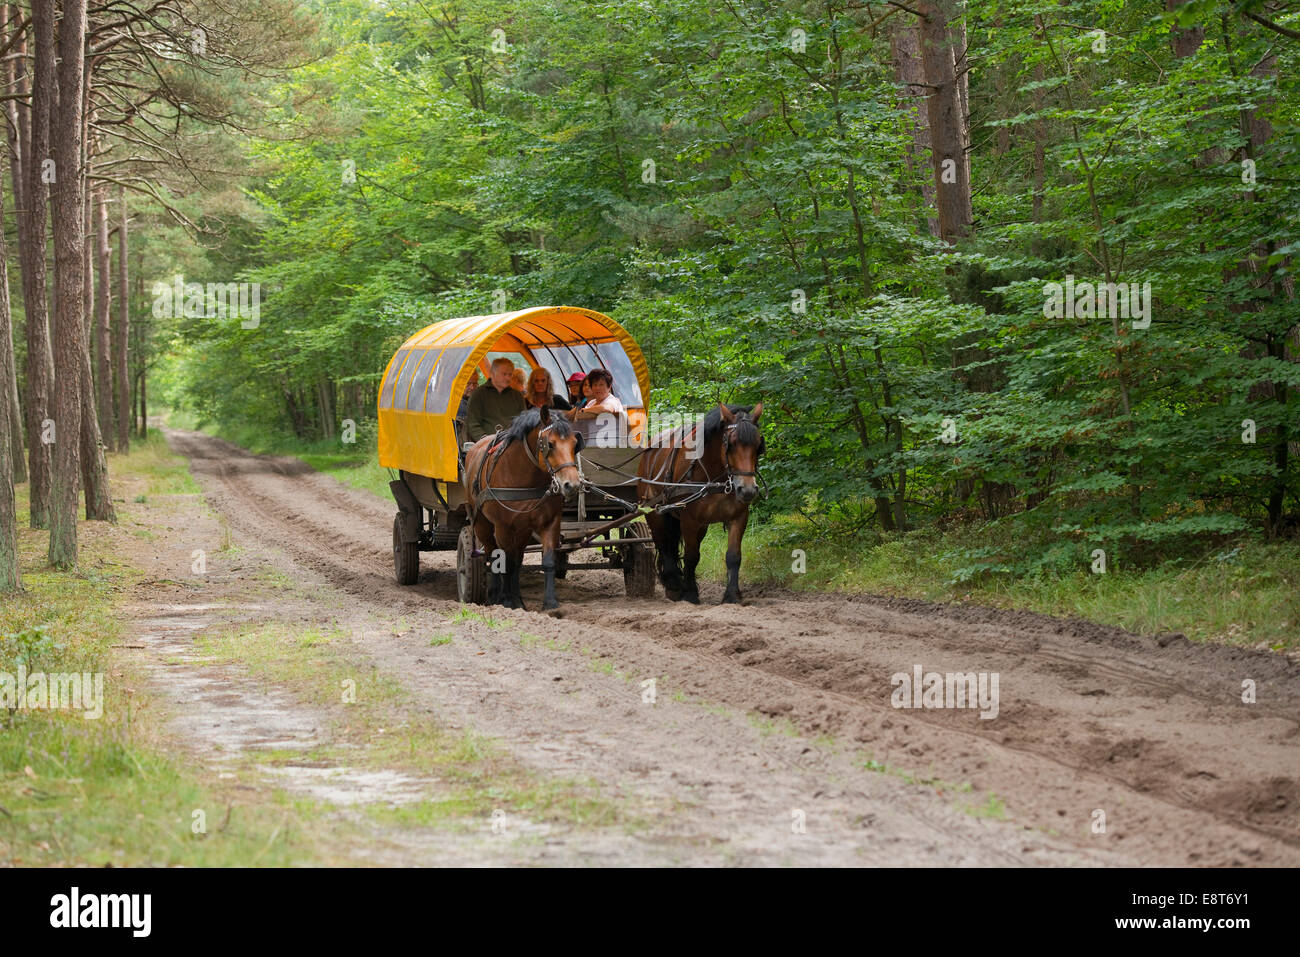 Horse-drawn carriage with passengers in a forest, Darß, Bodden Landscape of Vorpommern National Park - Stock Image